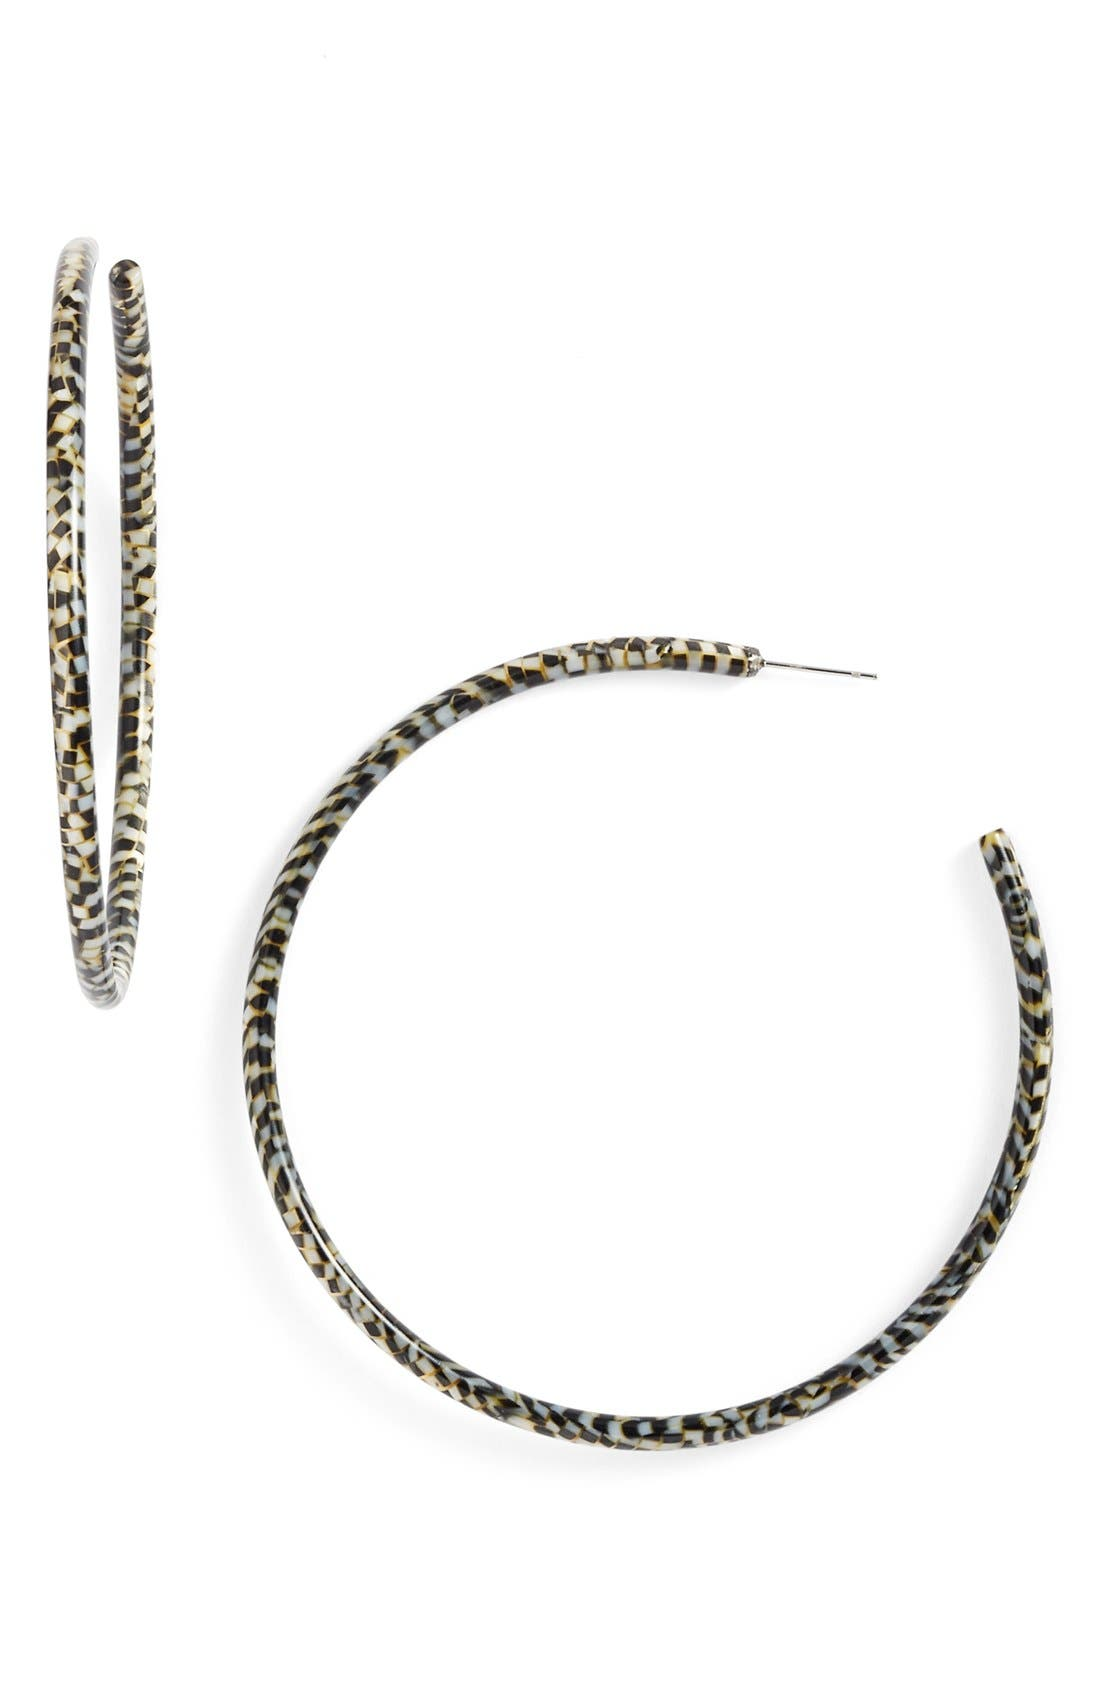 L. ERICKSON L Erickson 'Jumbo' Hoop Earrings